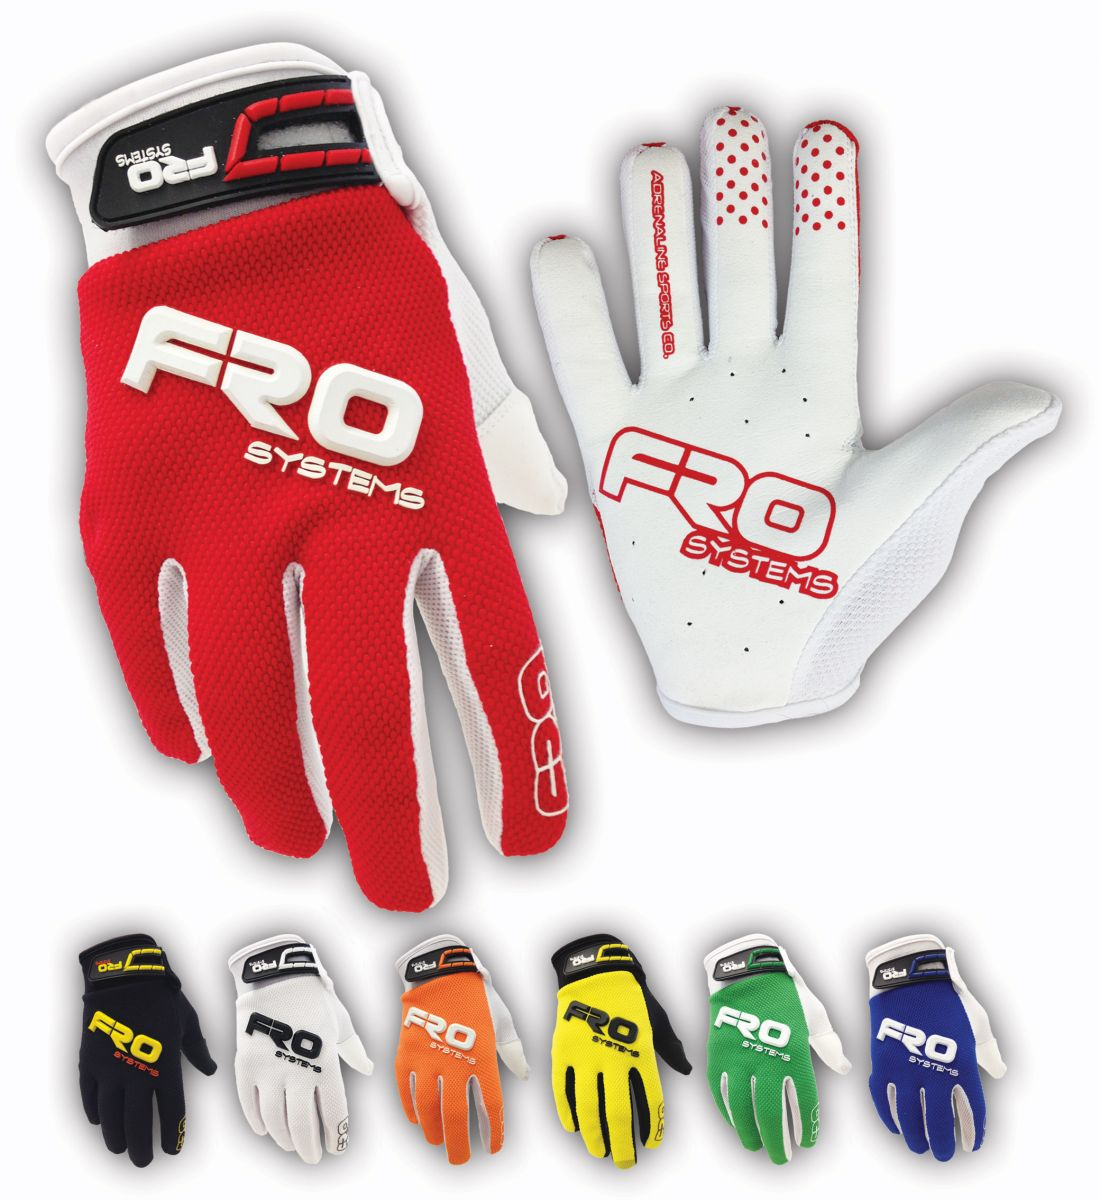 Adult Motocross Dirt Bike Race Gloves